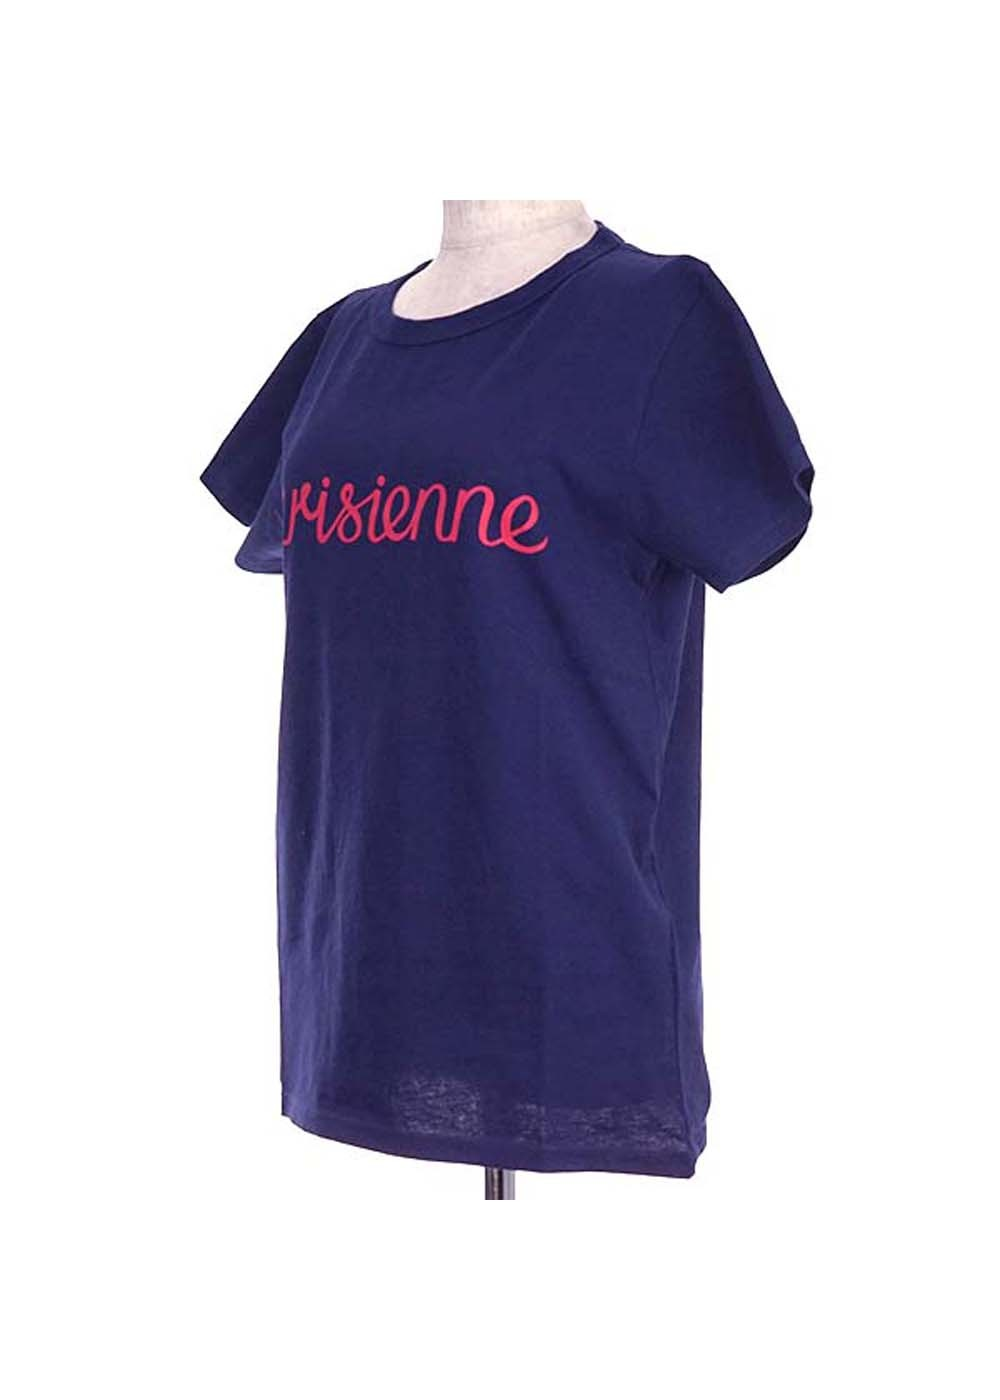 【最大35%OFF】TEE SHIRT PARISIENNE|DARK BLUE|Tシャツ|MAISON KITSUNE